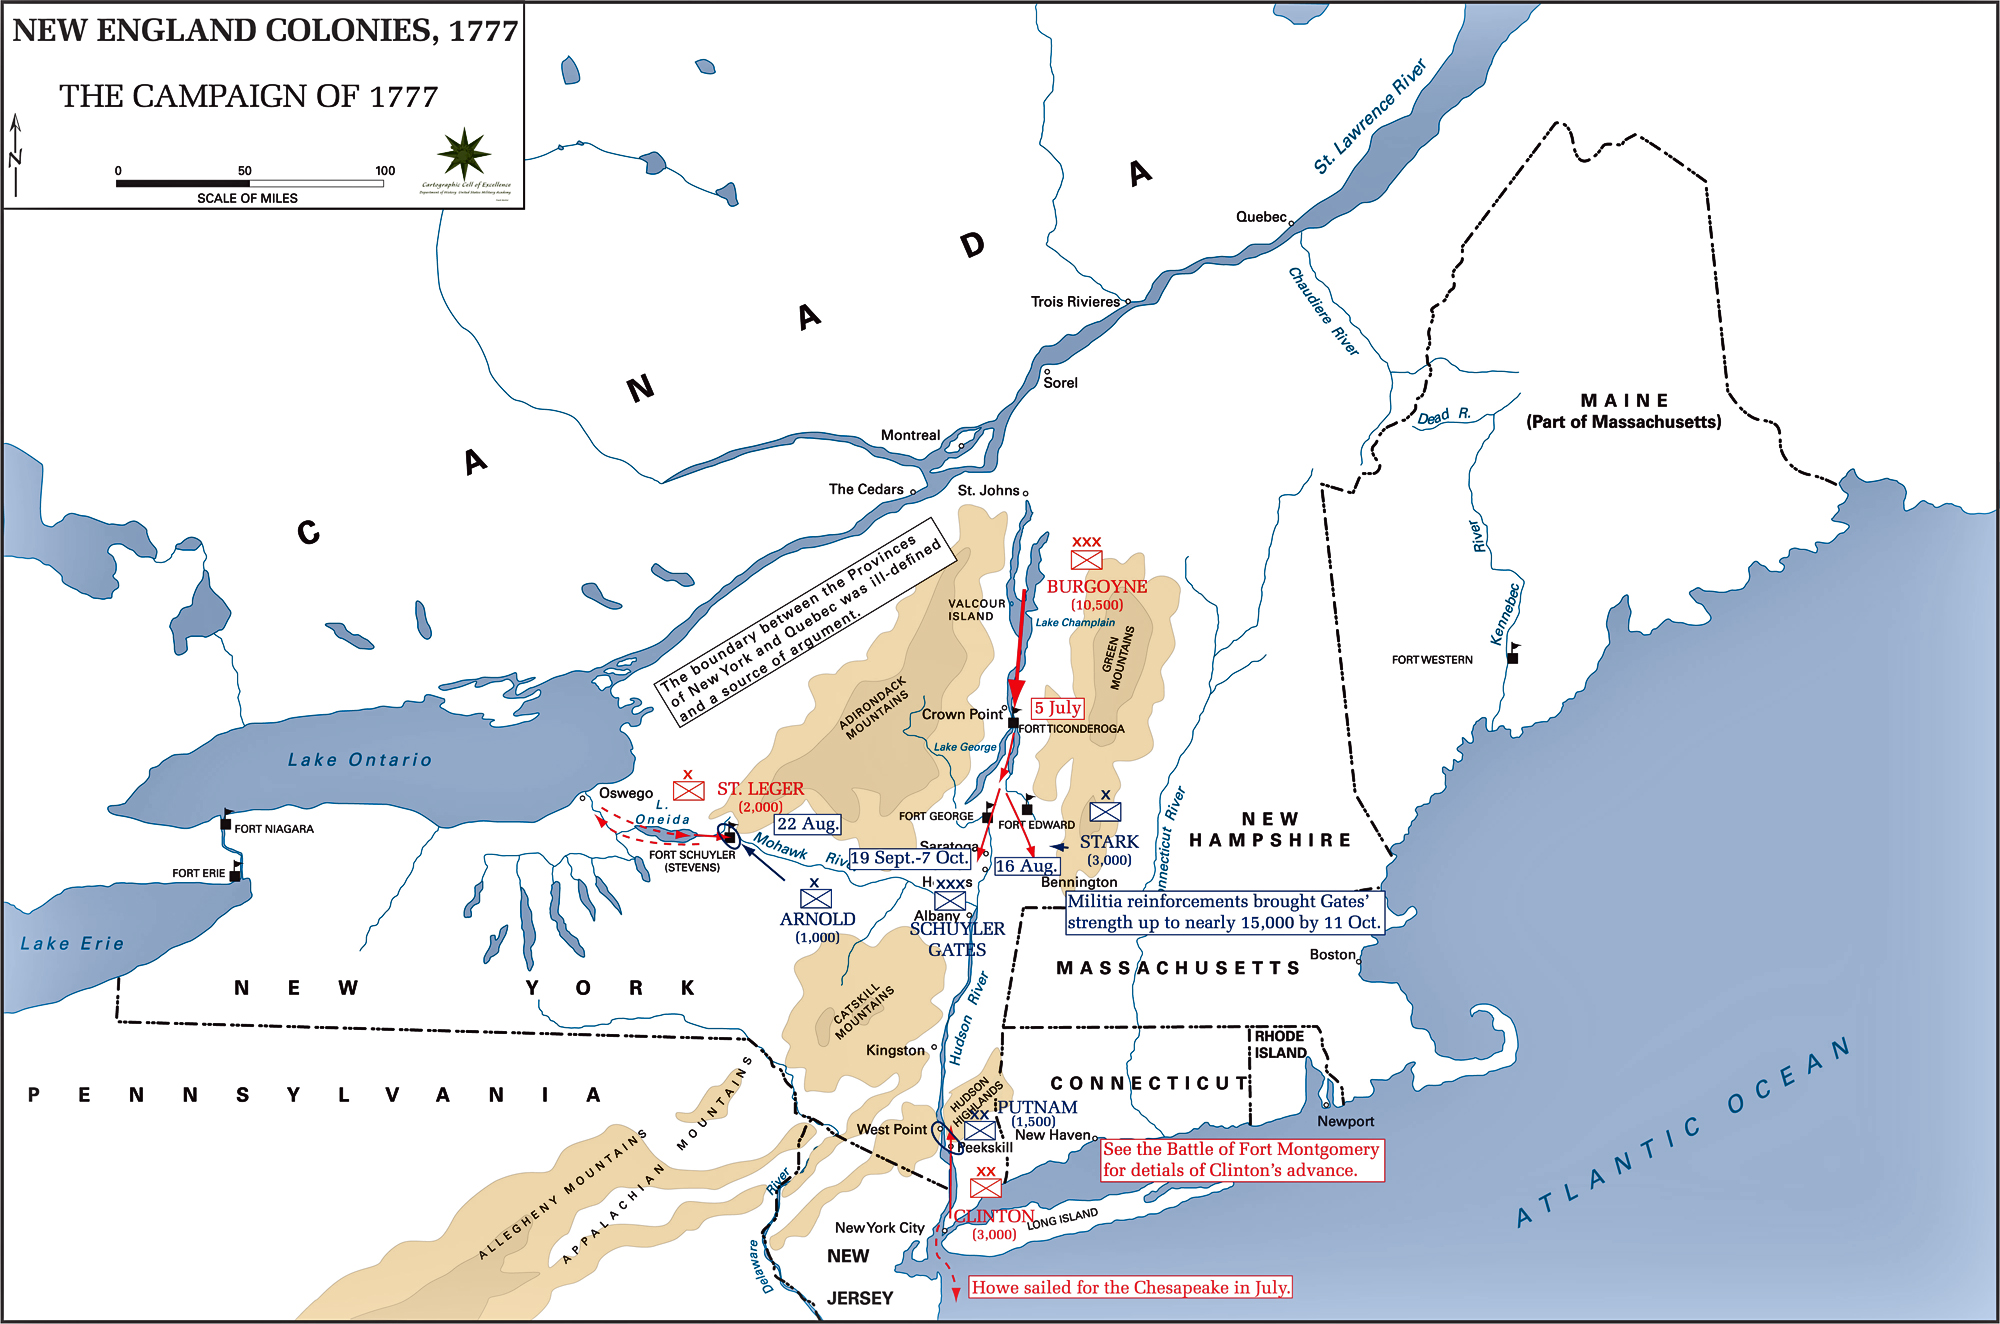 Map of the Campaign of 1777